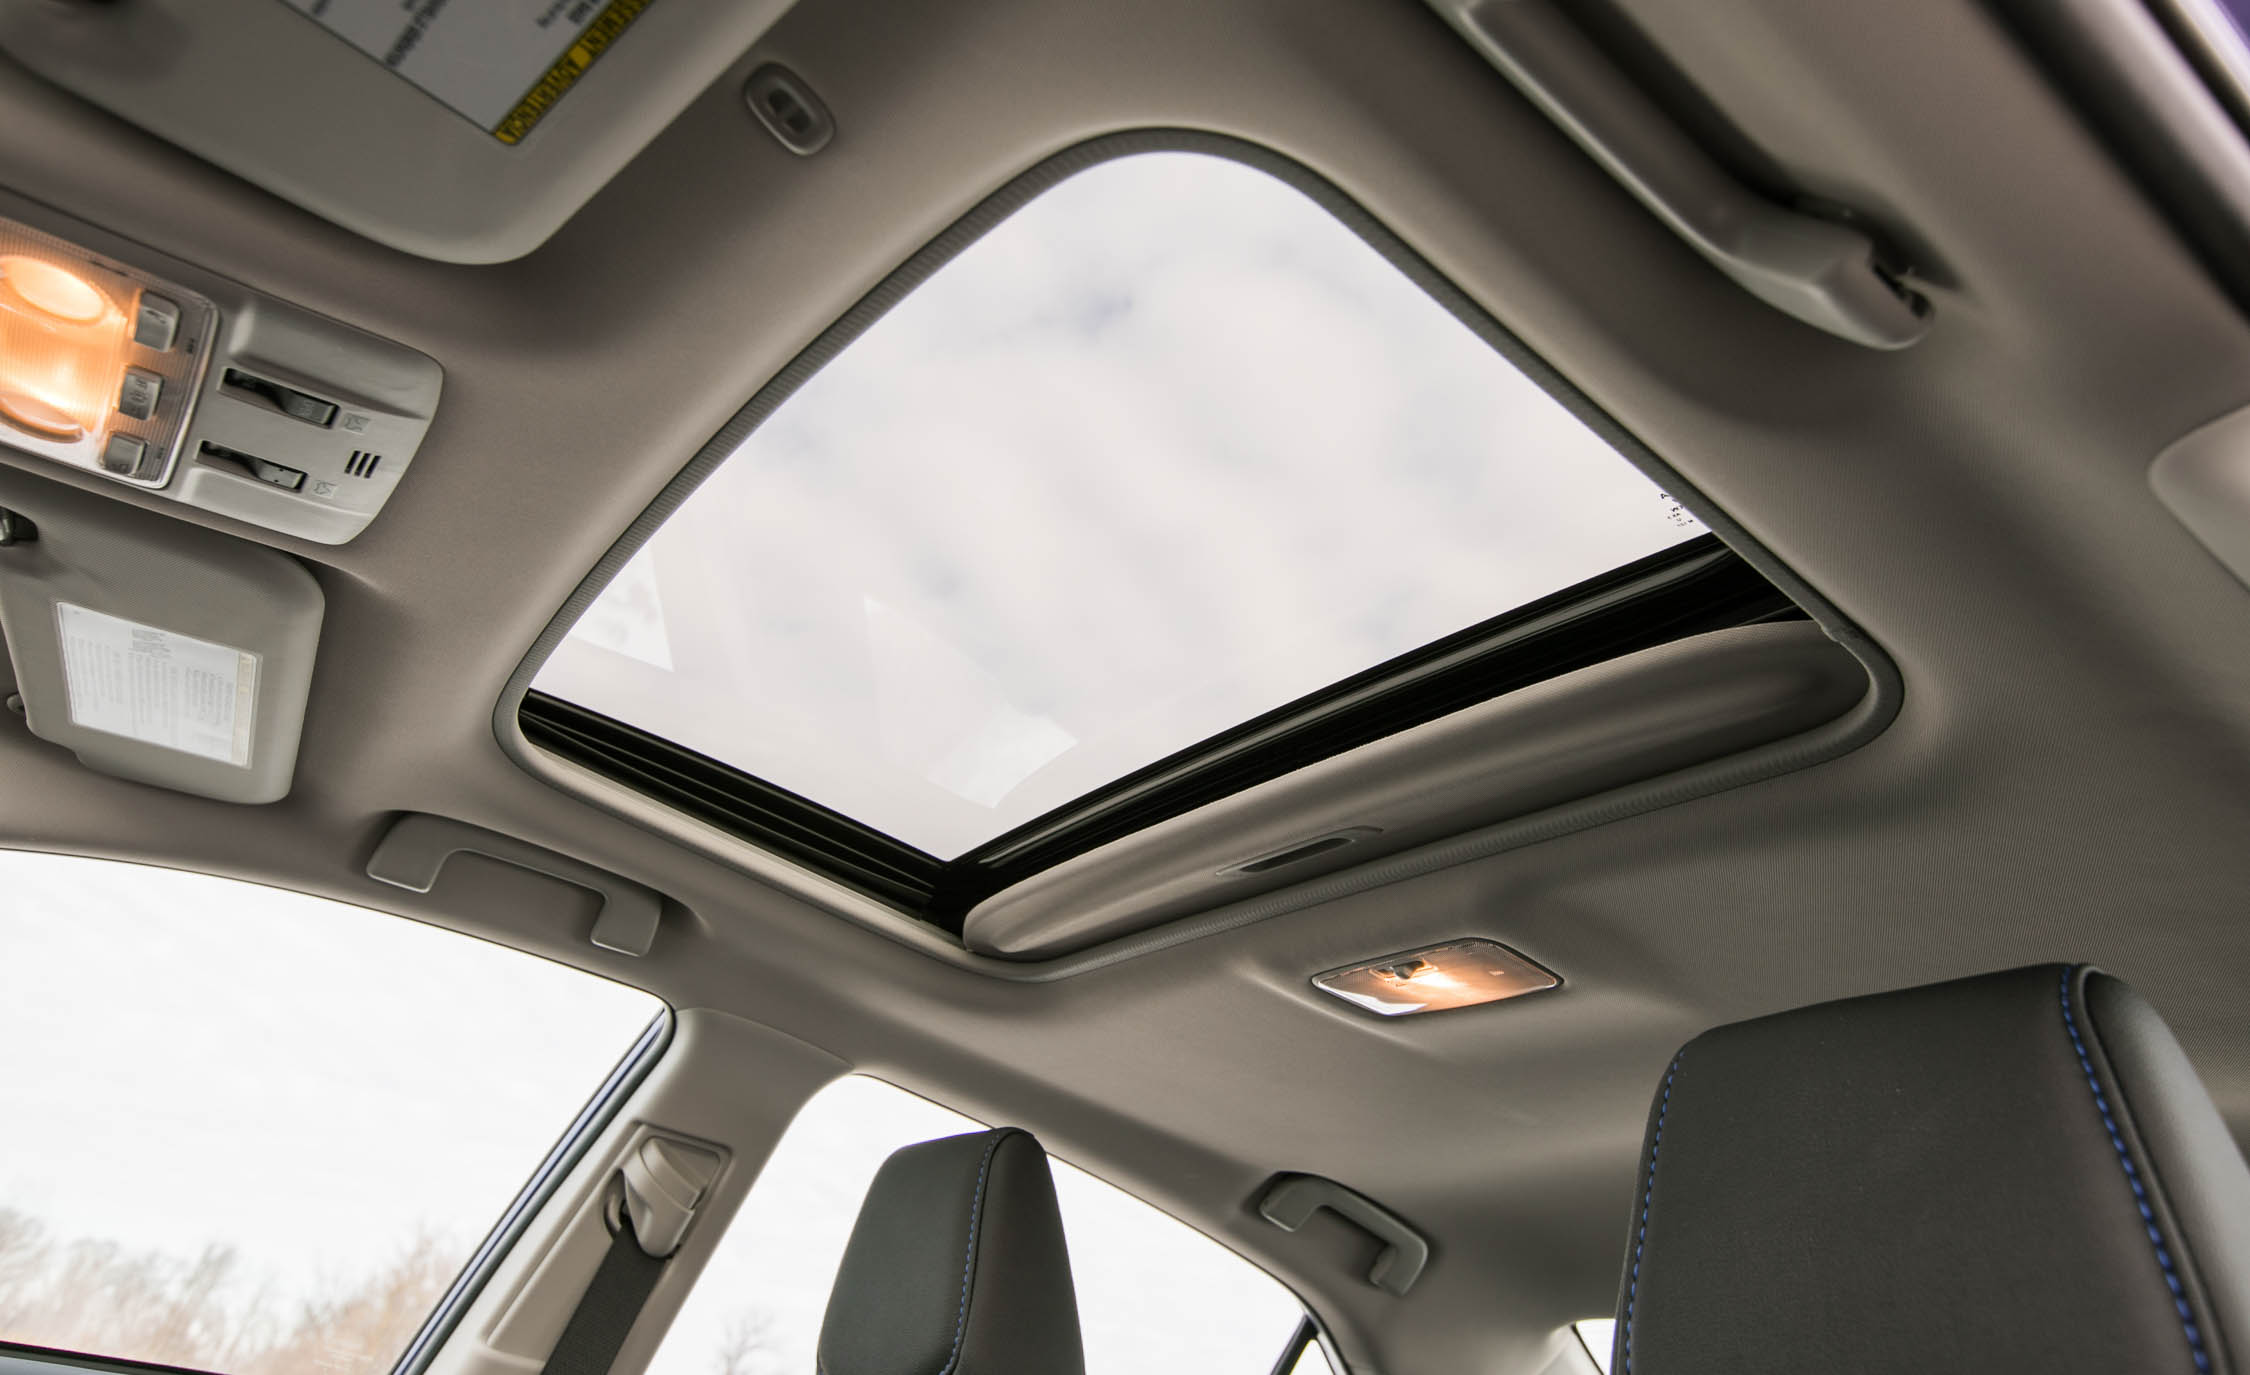 2017 Toyota Corolla XSE Interior View Sunroof (View 44 of 75)